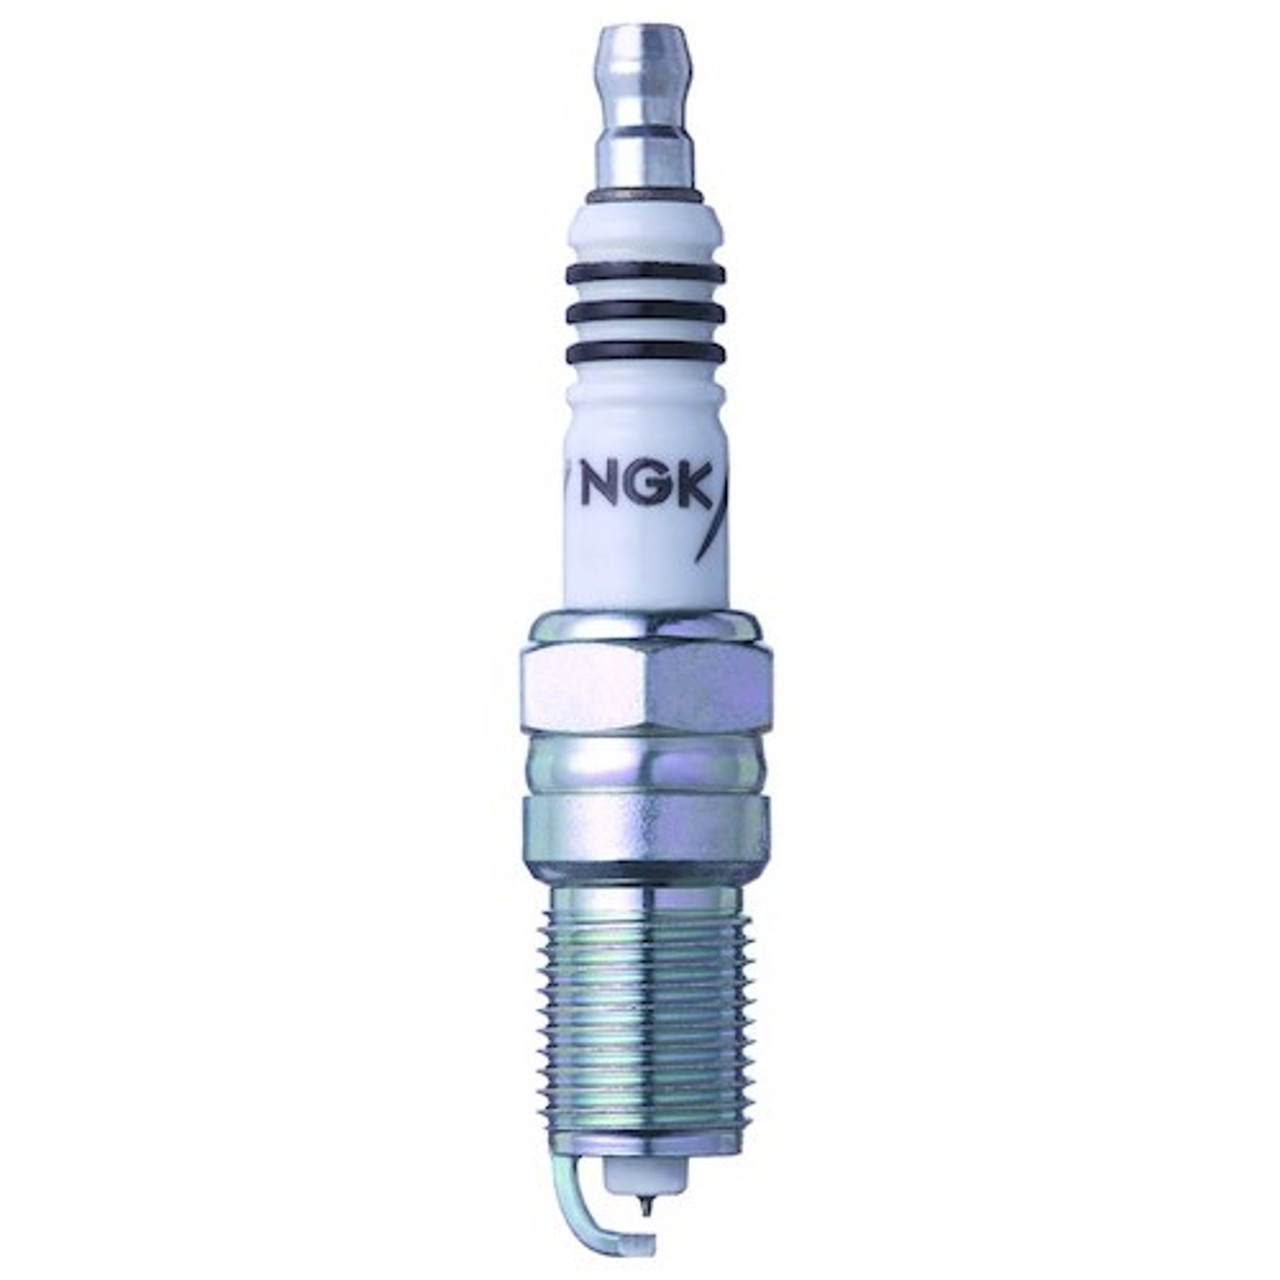 NGK TR7IX Spark Plug for moderately modified 2007-2014 GT500  (NGK-3690)